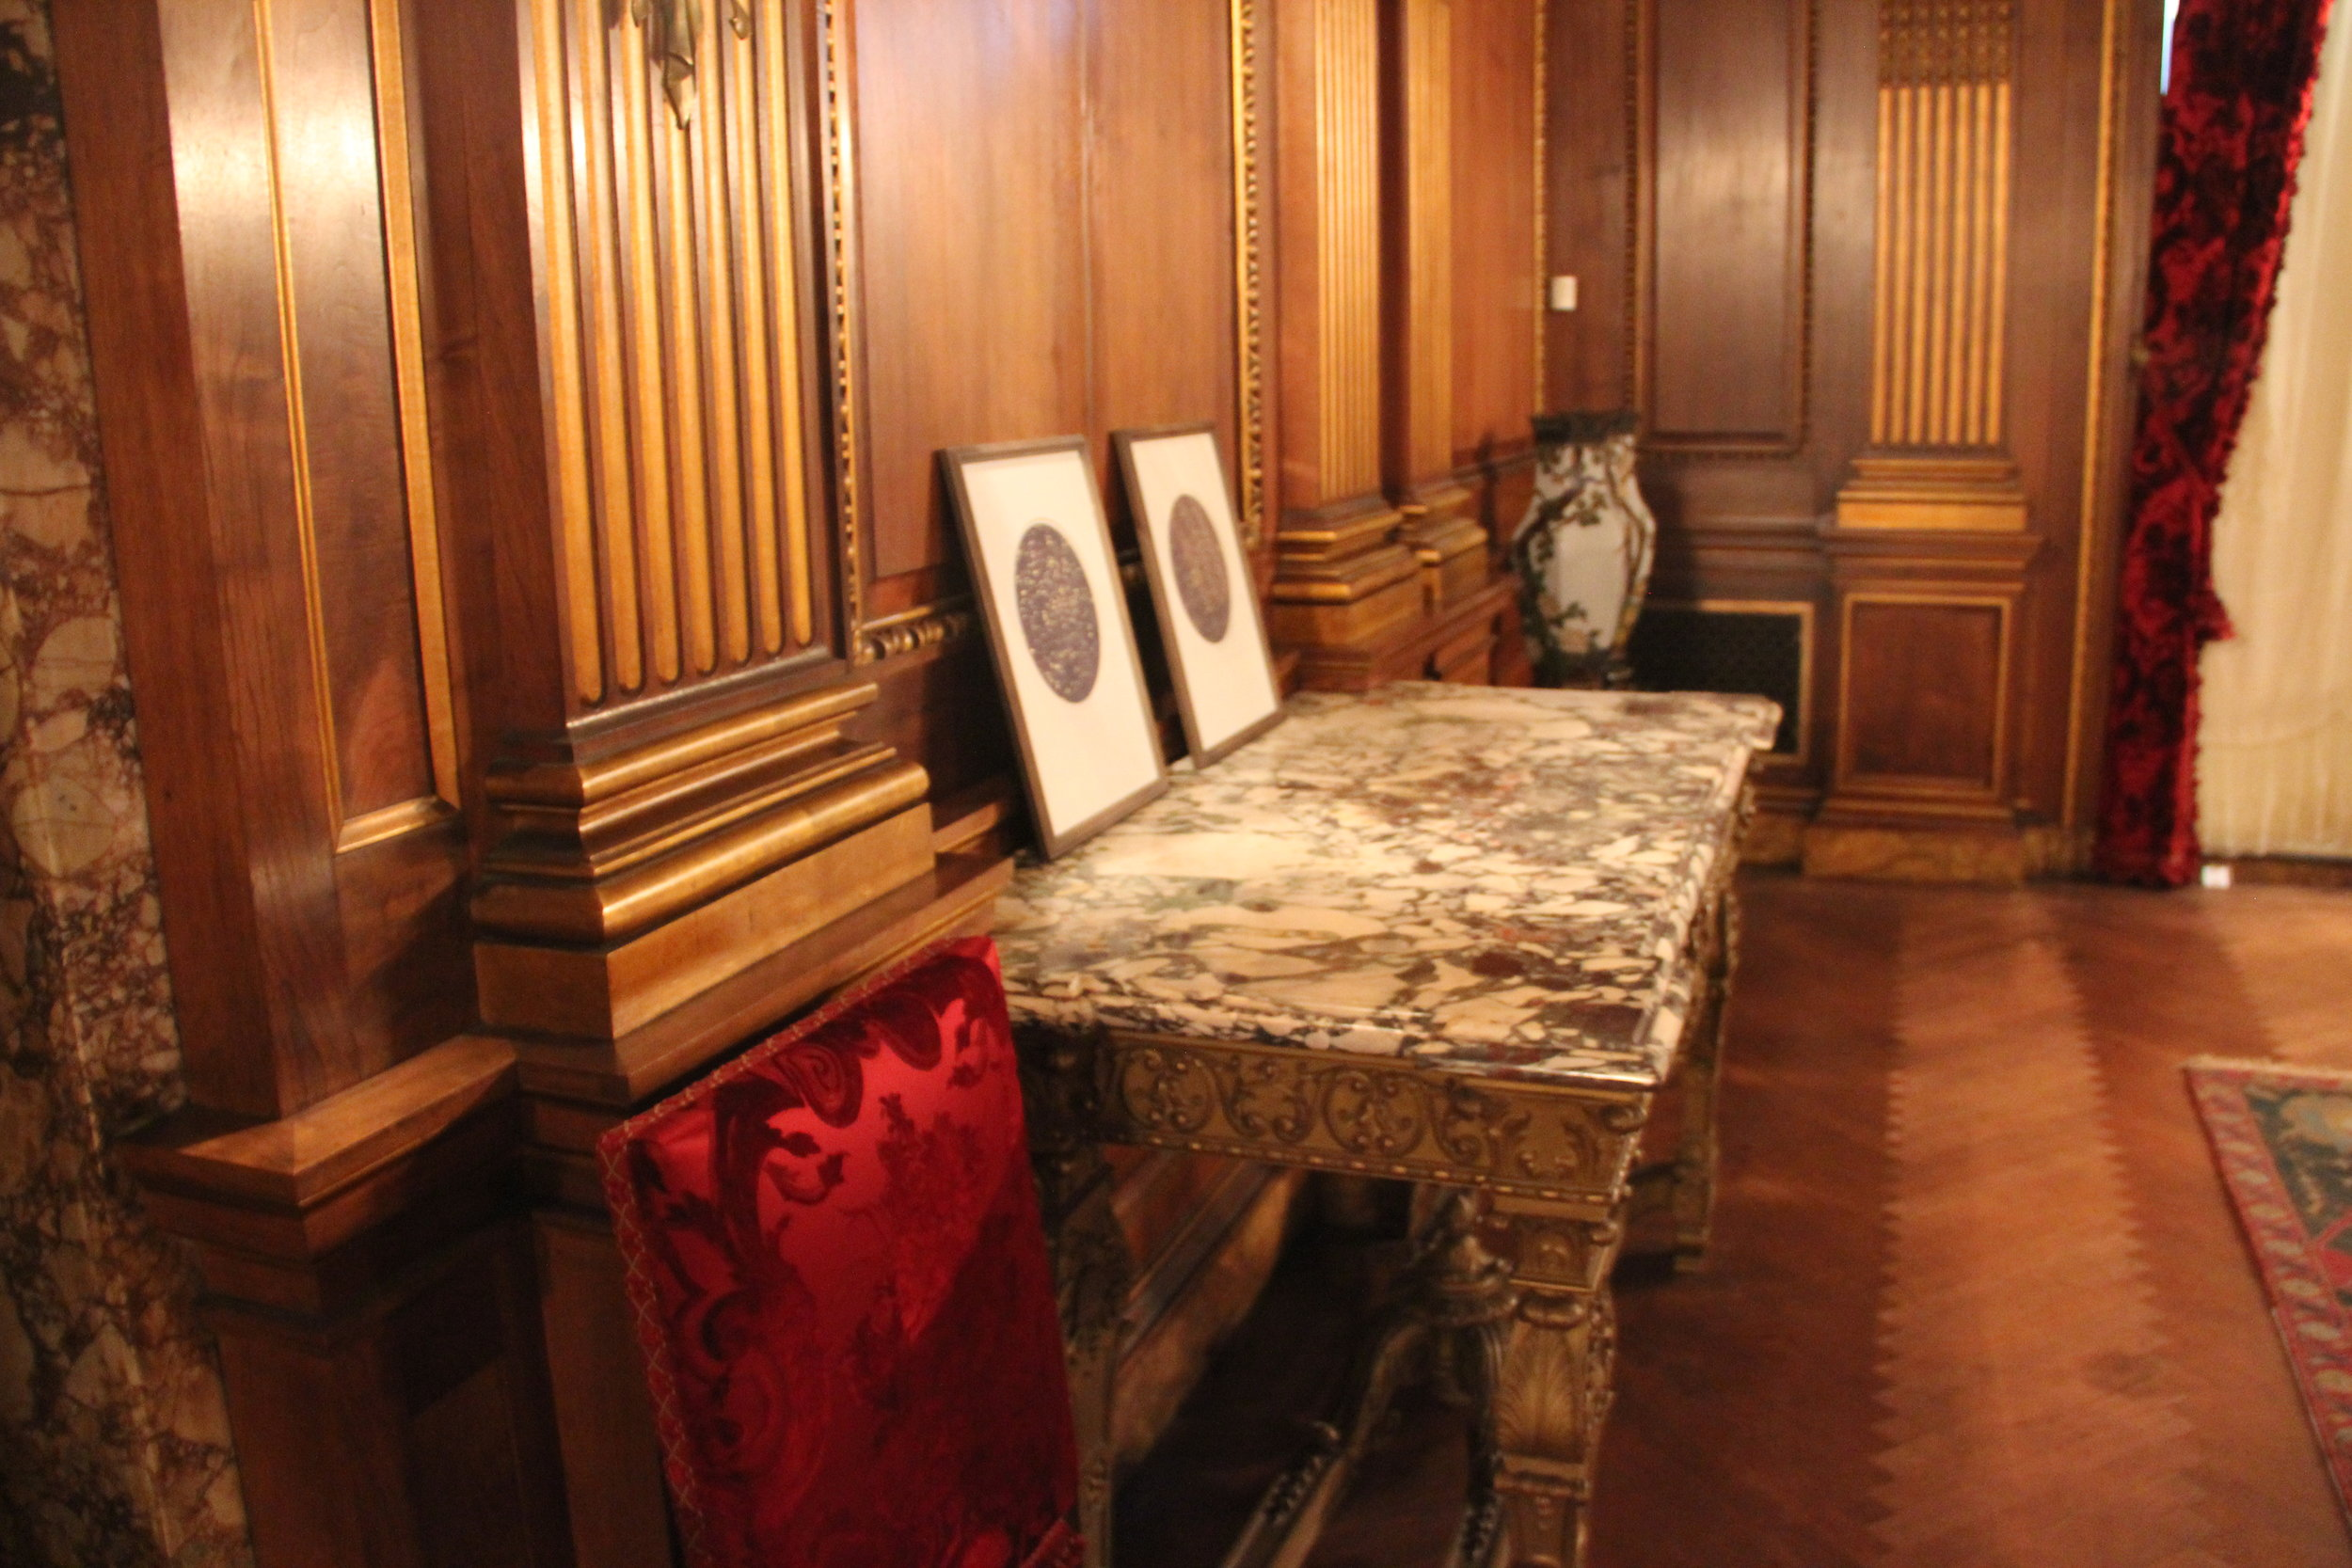 Installation View, Vanderbilt Mansion Museum, Hyde Park, NY 2015